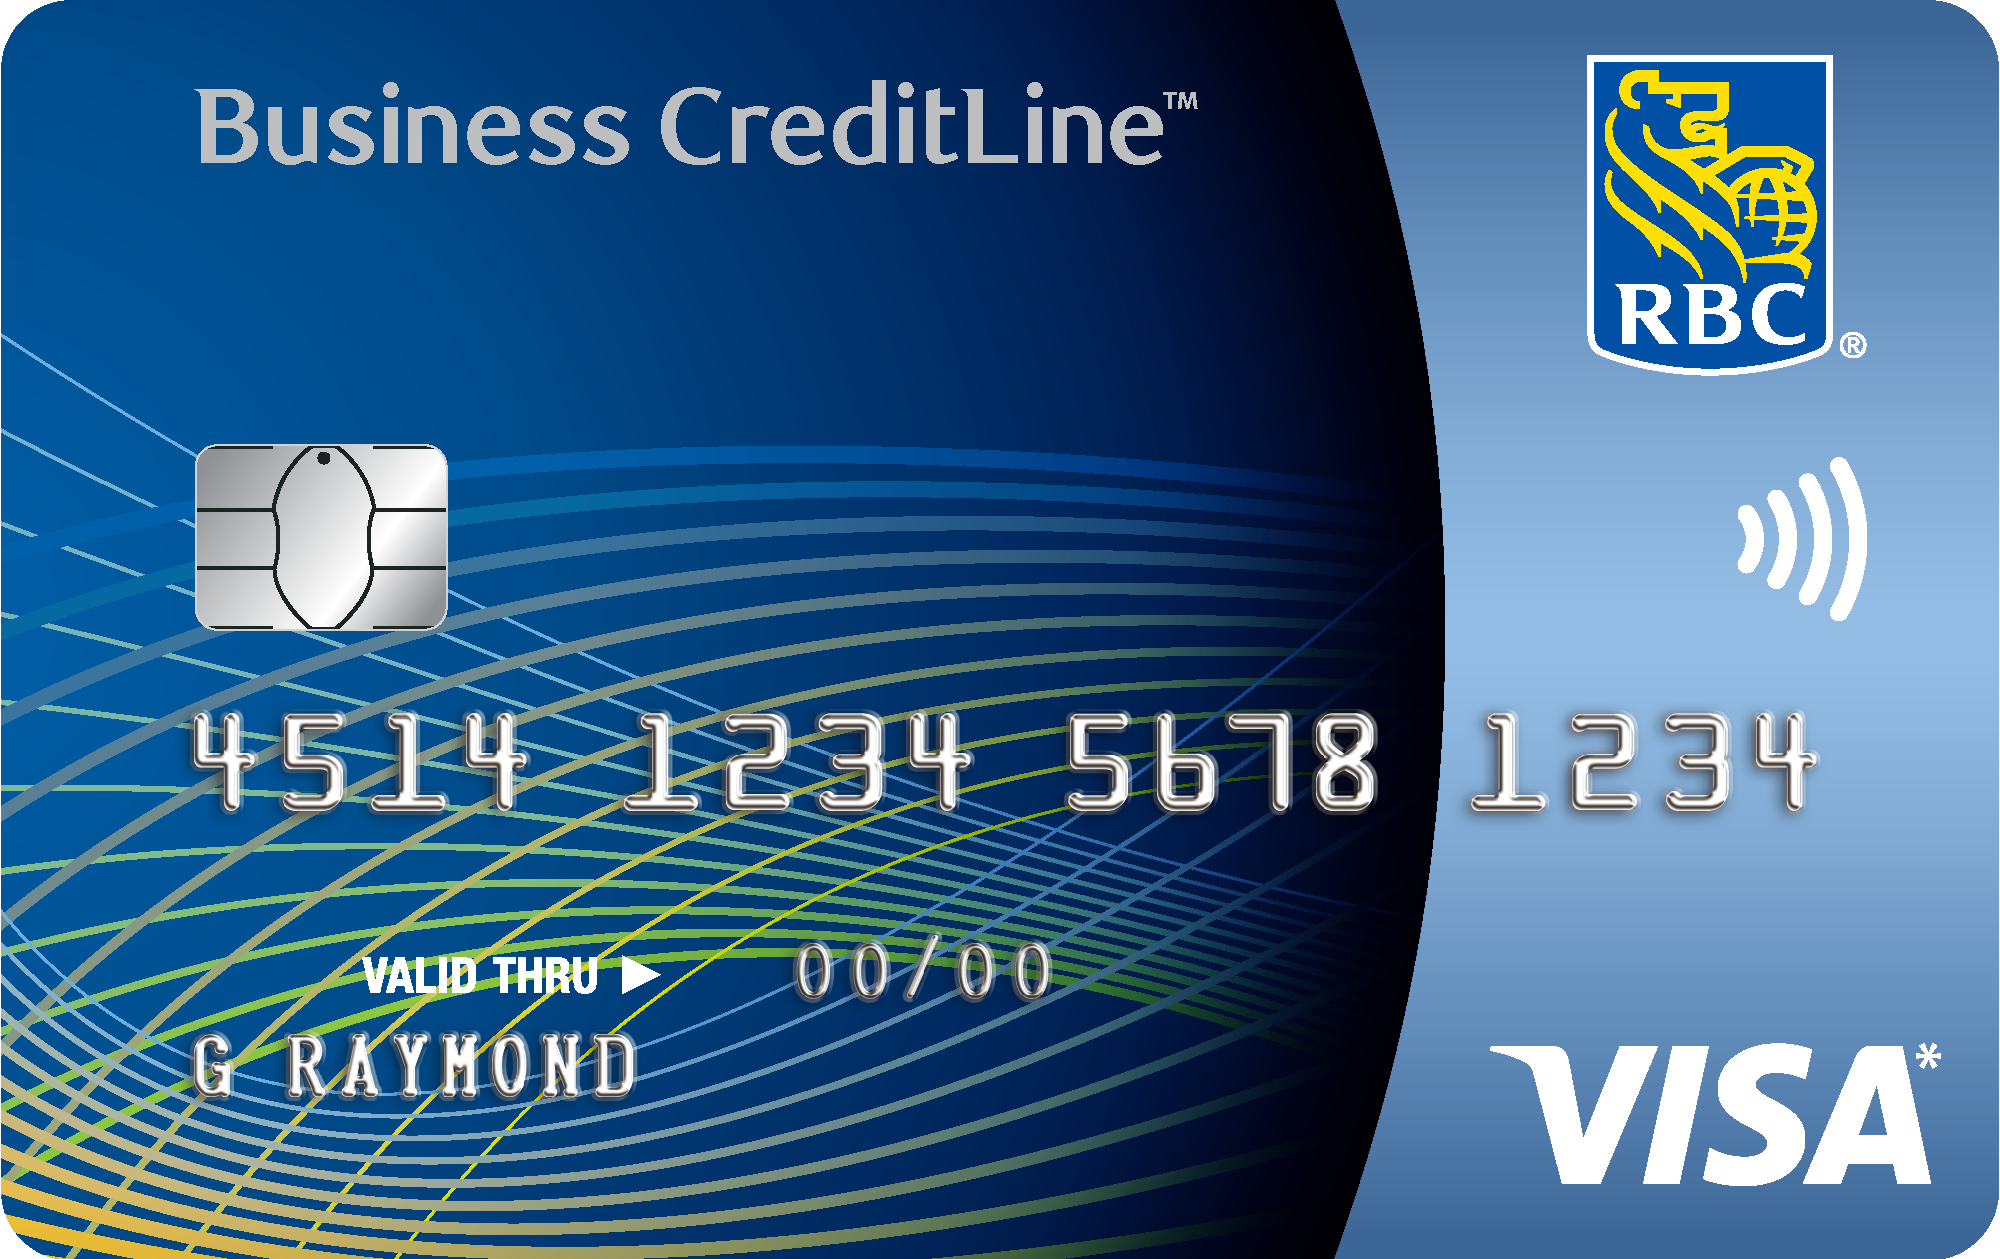 Visa creditline for small business rbc royal bank visa creditline for small business visa creditline card reheart Gallery